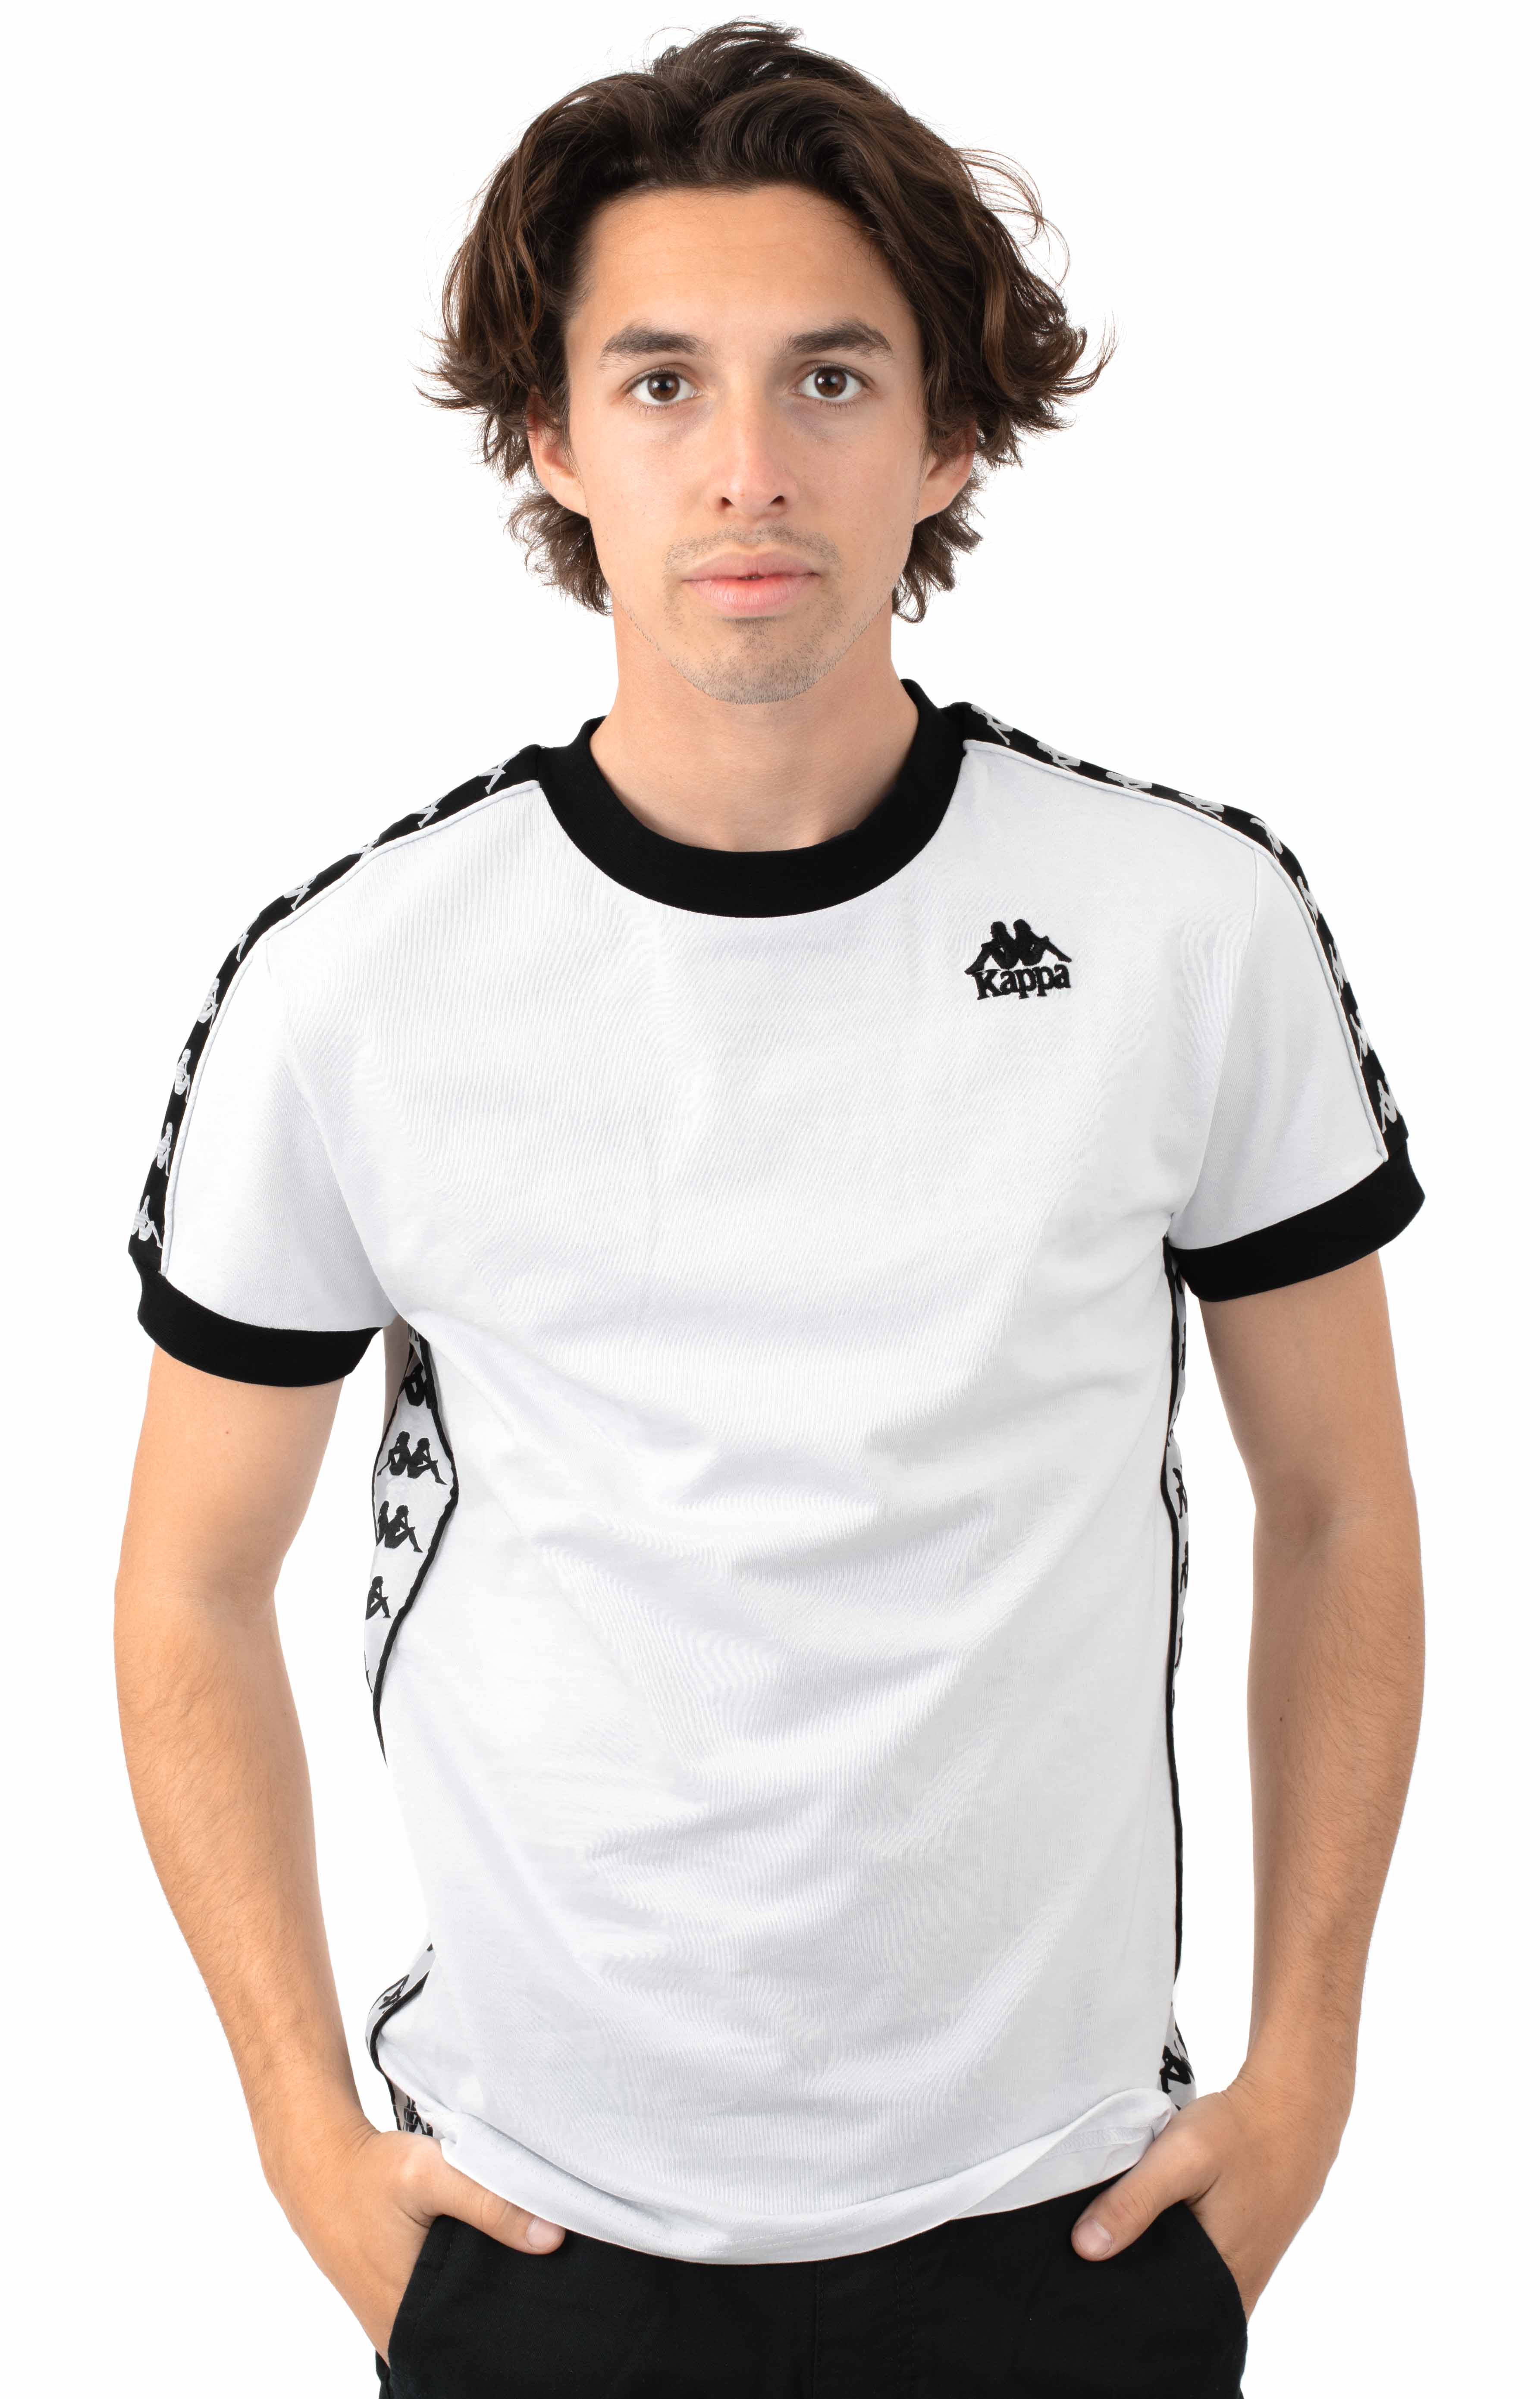 222 Banda Bismal T-Shirt - White/Black